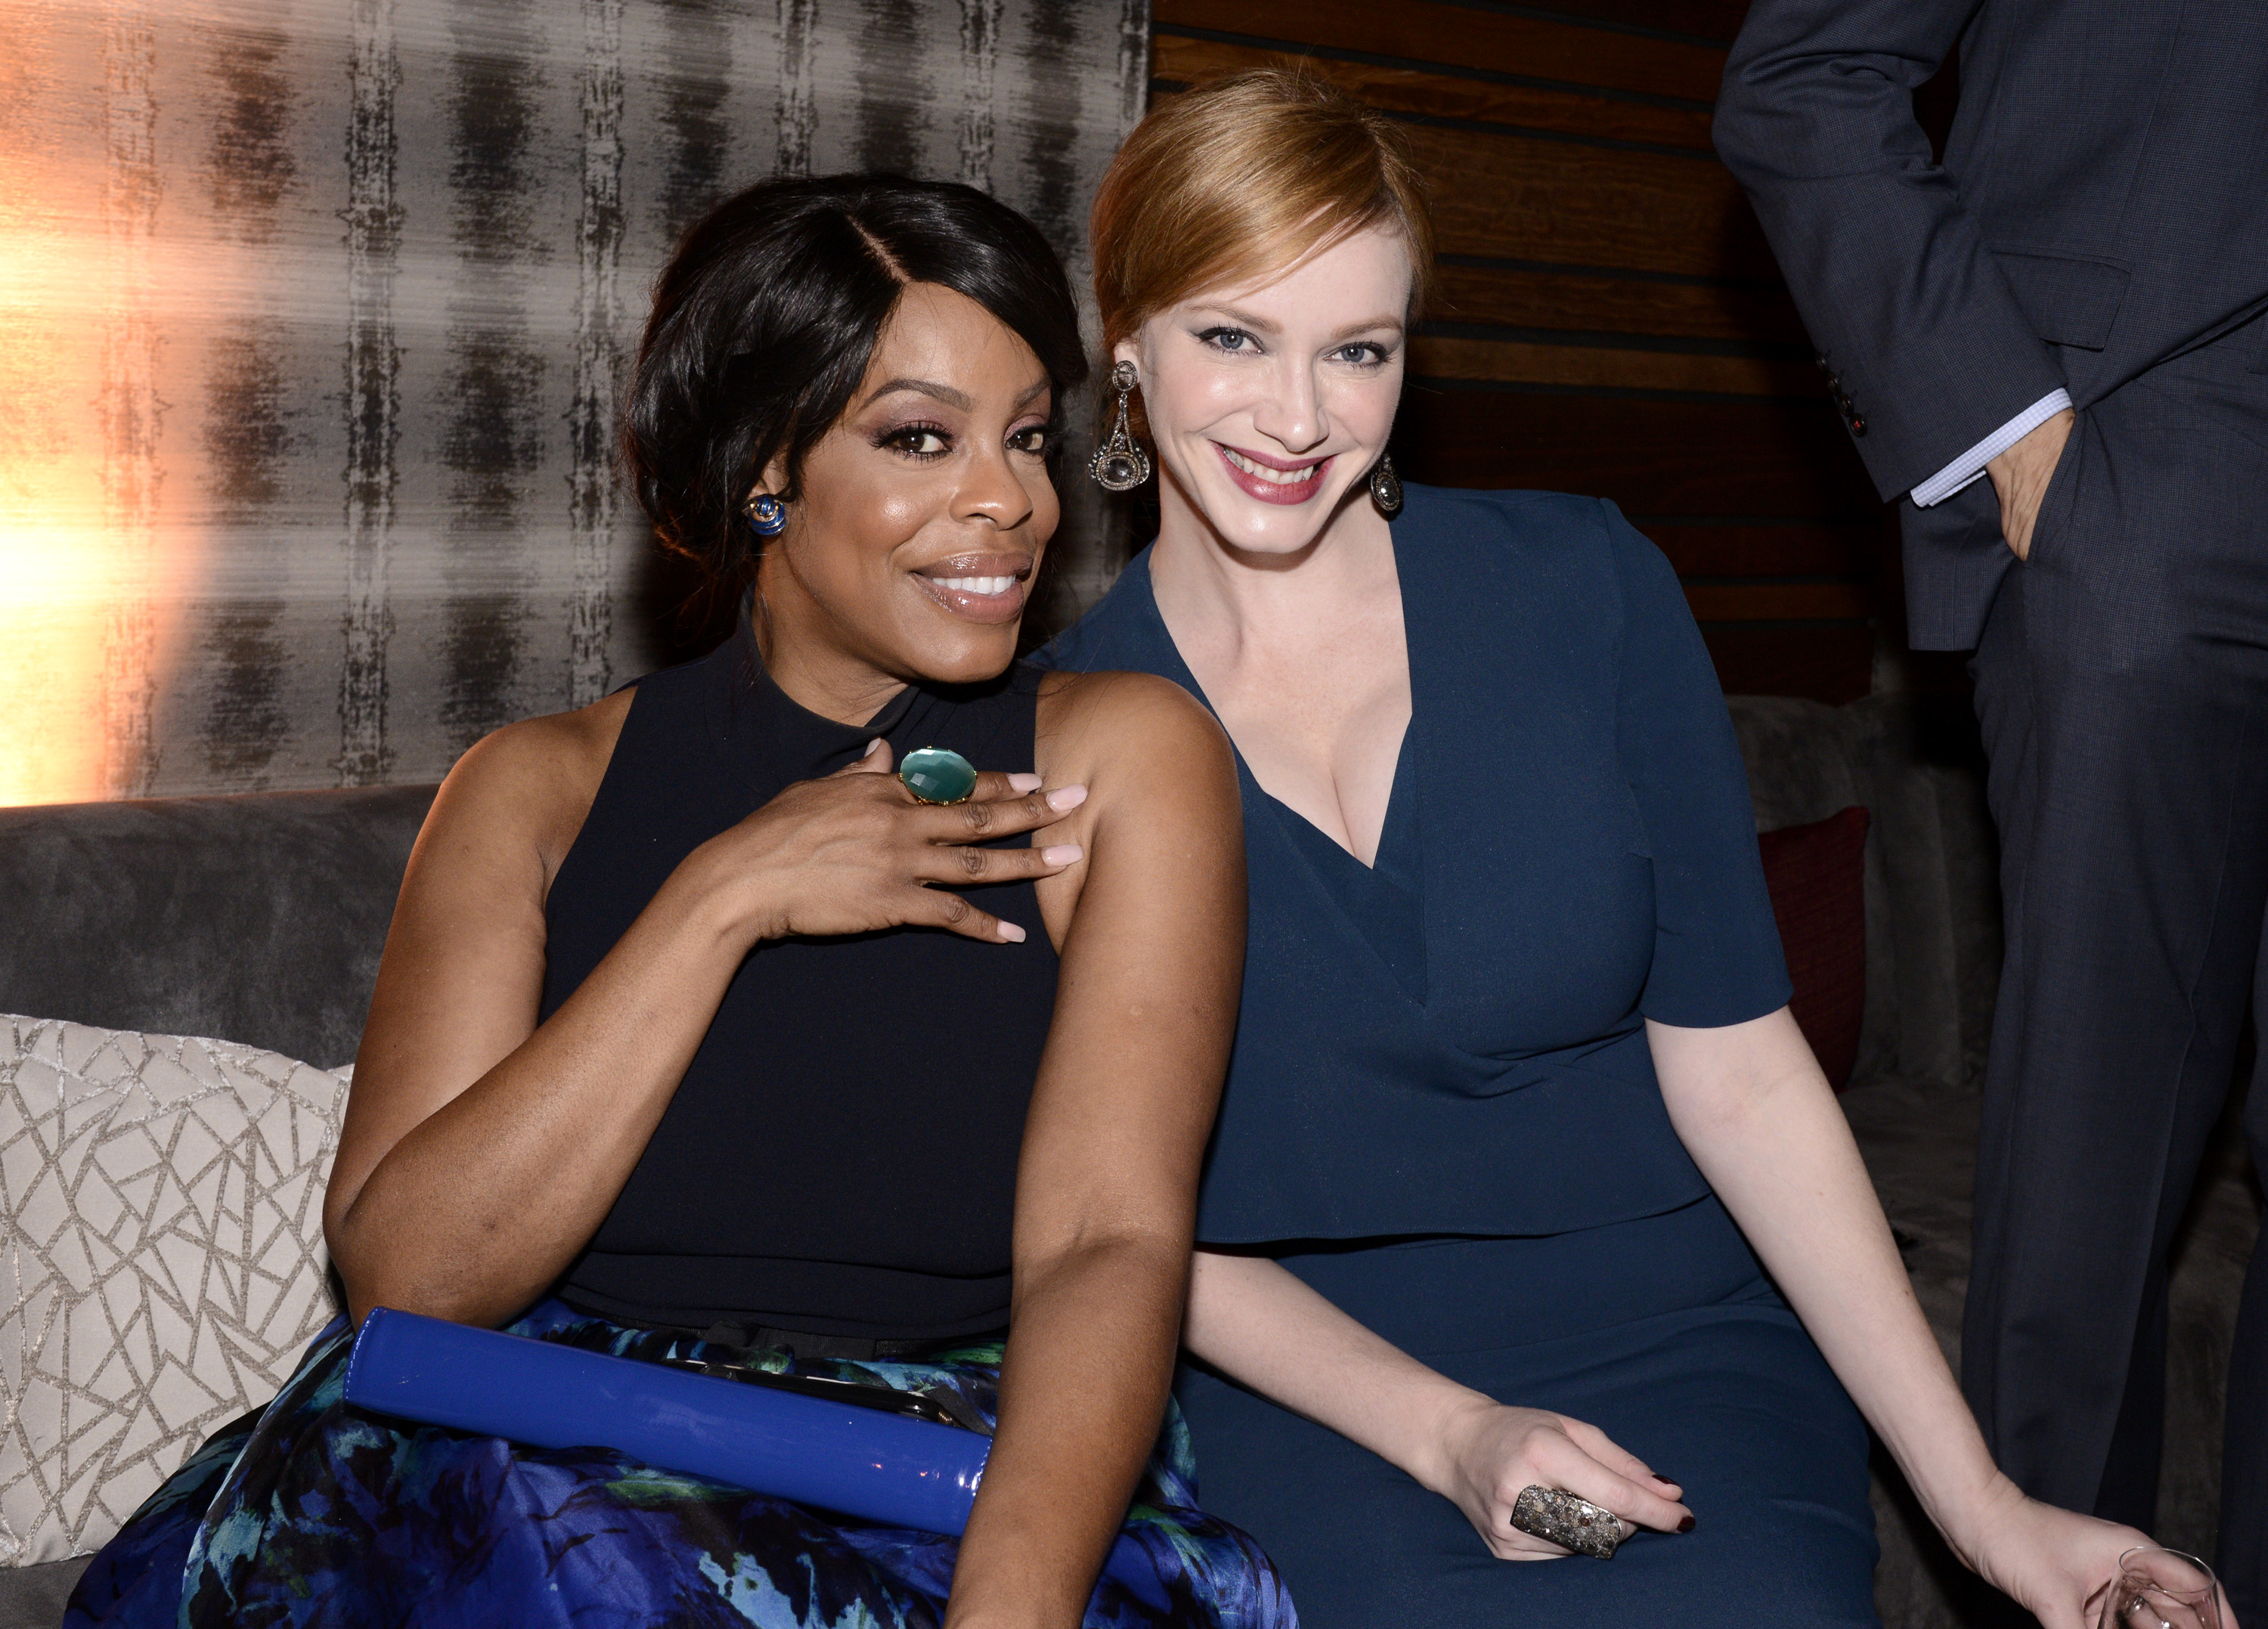 IMAGE DISTRIBUTED FOR TELEVISION ACADEMY - EXCLUSIVE - Niecy Nash, left, and Christina Hendricks attend the Television Academy's 67th Emmy Awards Performers Nominee Reception at the Pacific Design Center on Saturday, Sept.19, 2015, in West Hollywood, Calif. (Photo by Dan Steinberg/Invision for the Television Academy/AP Images)